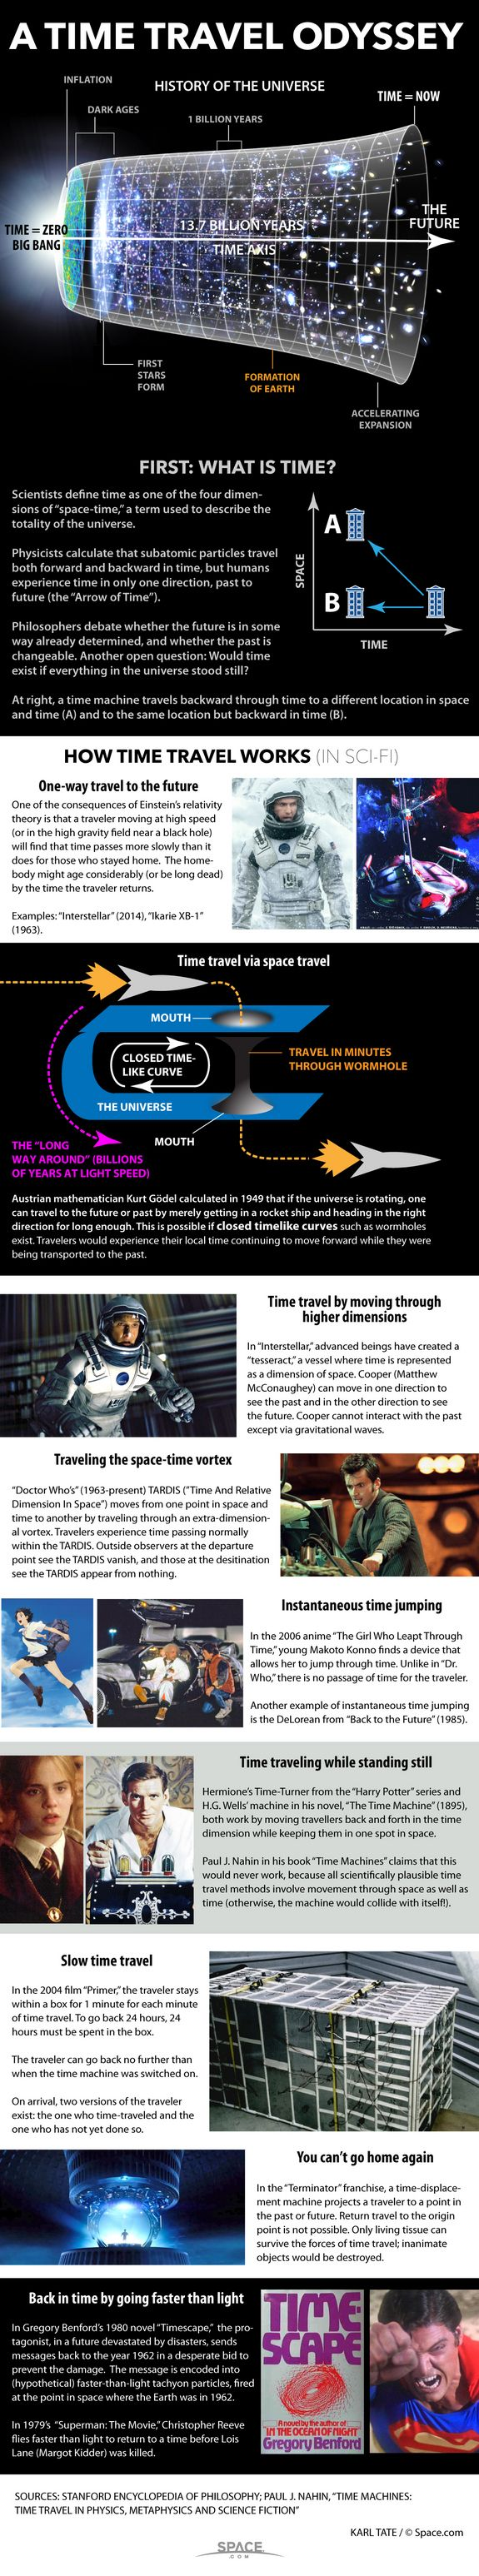 How Time Travel Works in Science Fiction | 10/9/15 Chart of various methods of time travel.